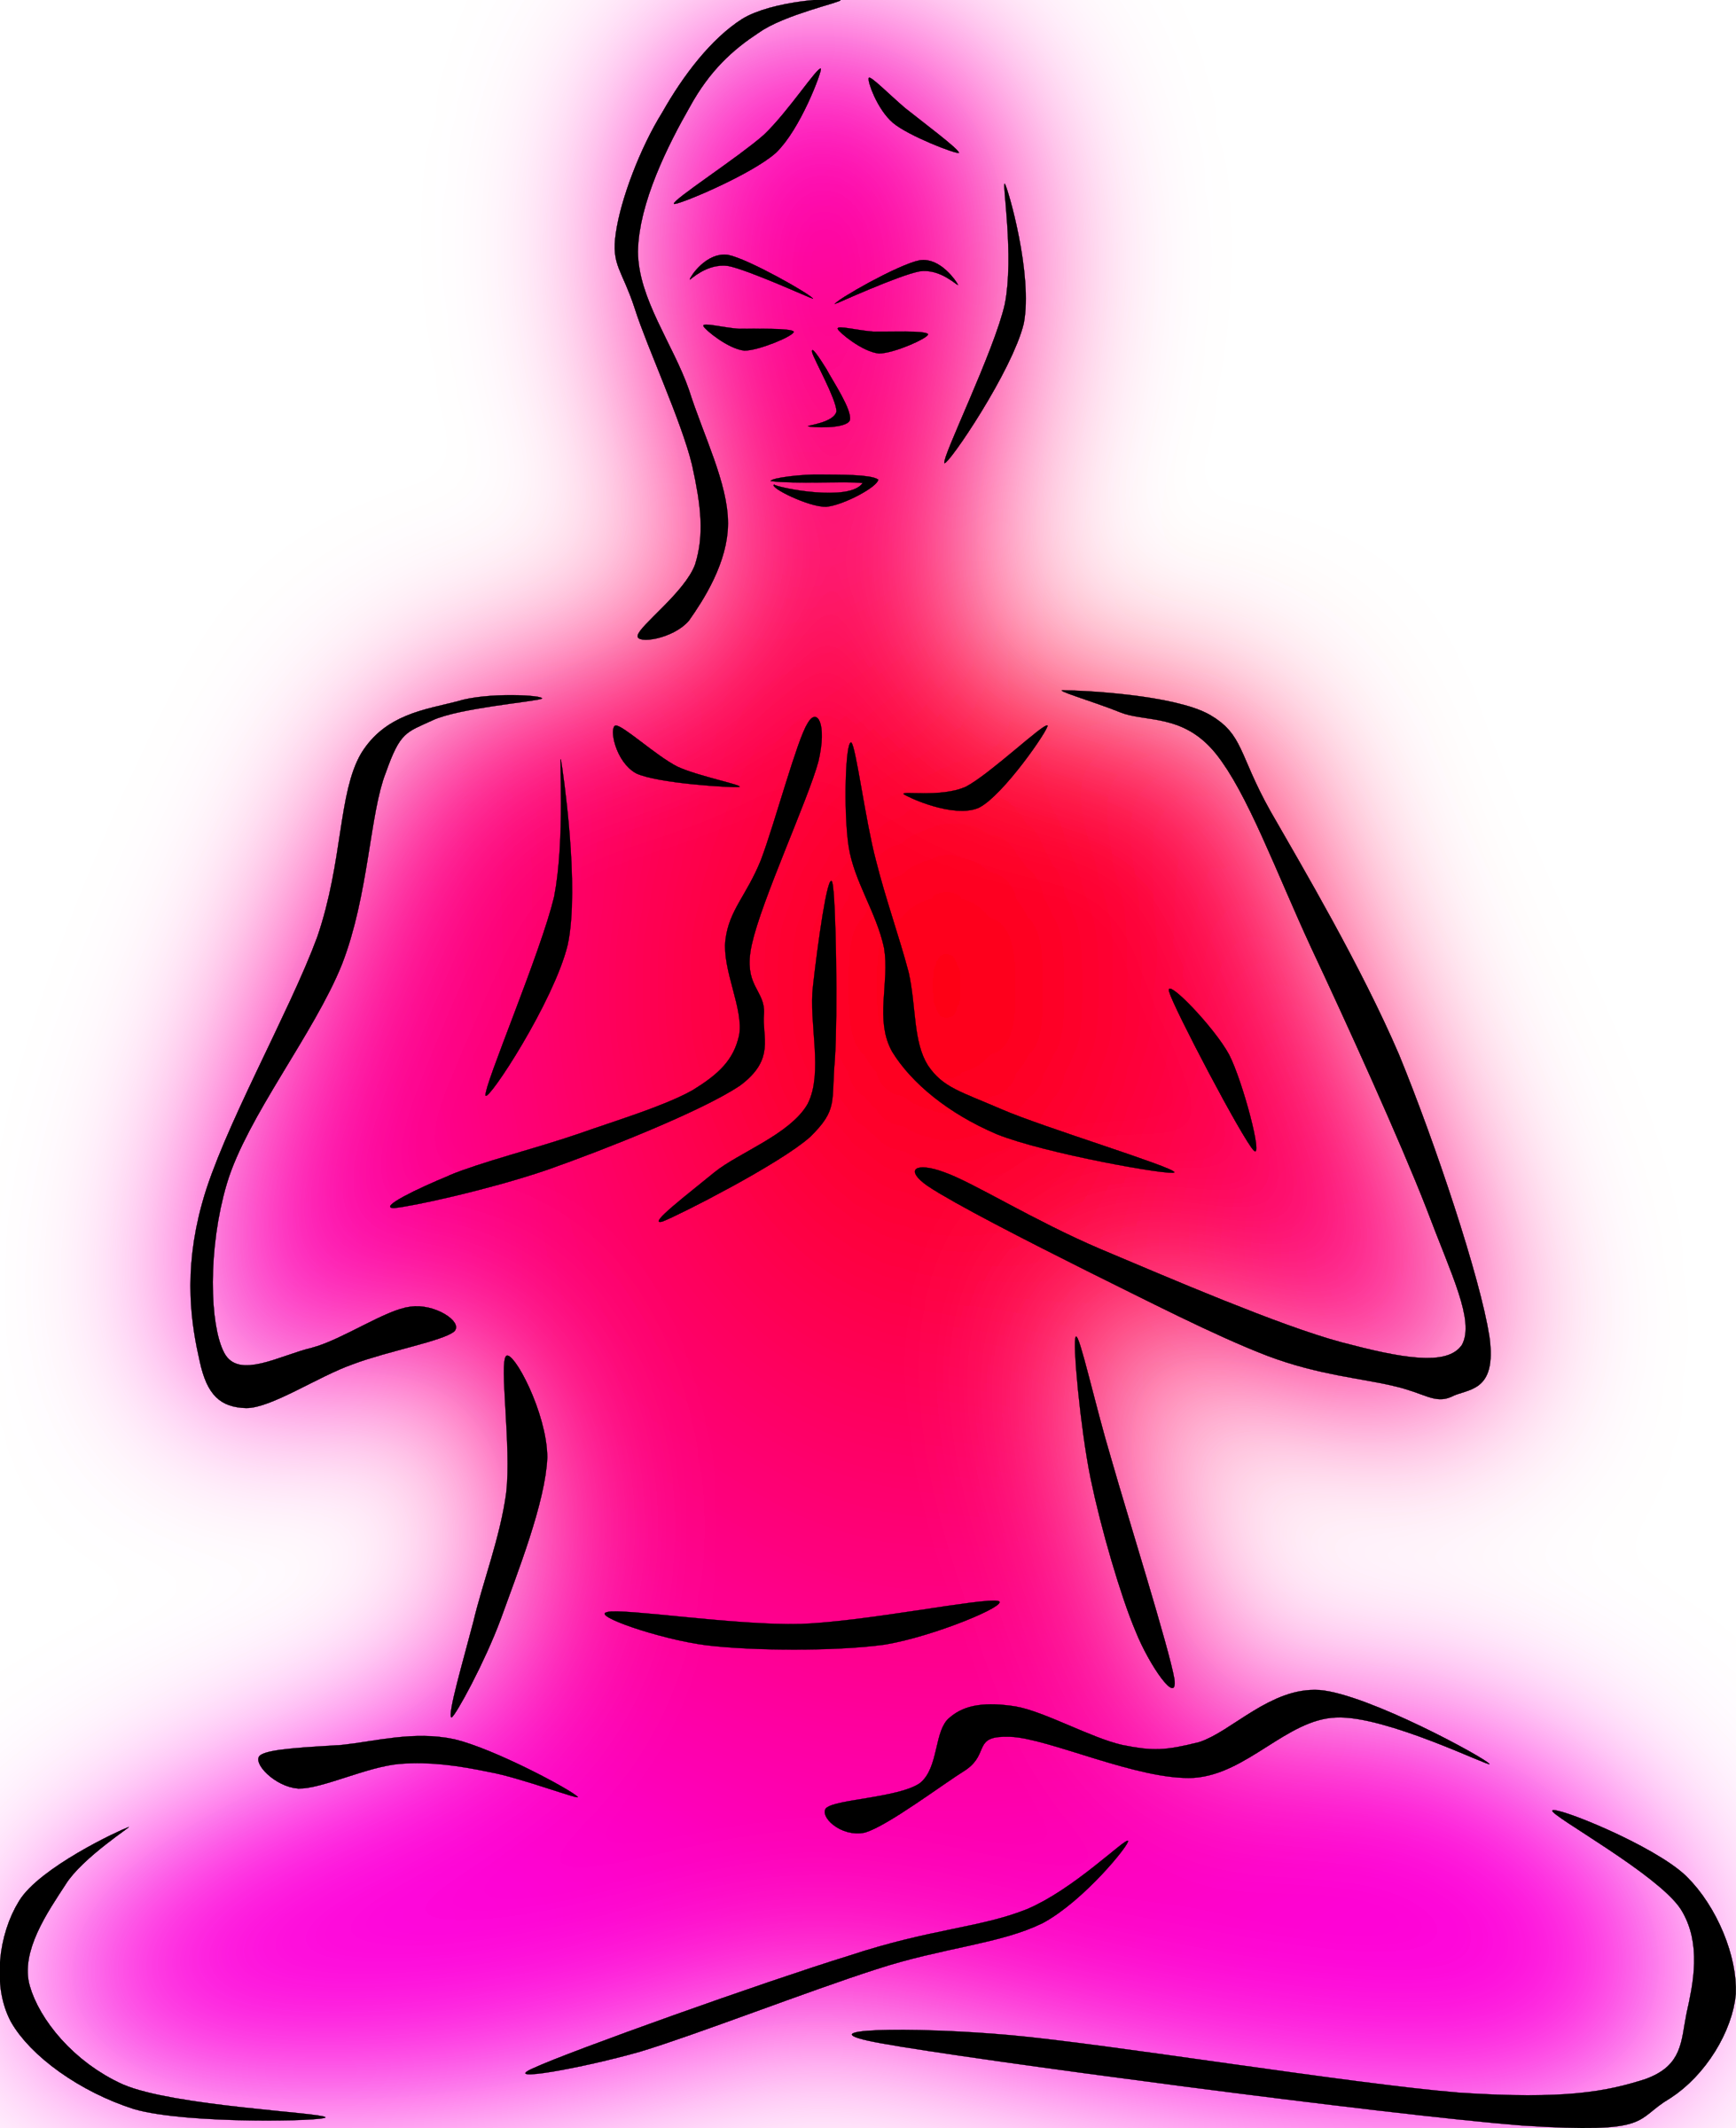 Relax clipart meditation posture. Free at getdrawings com